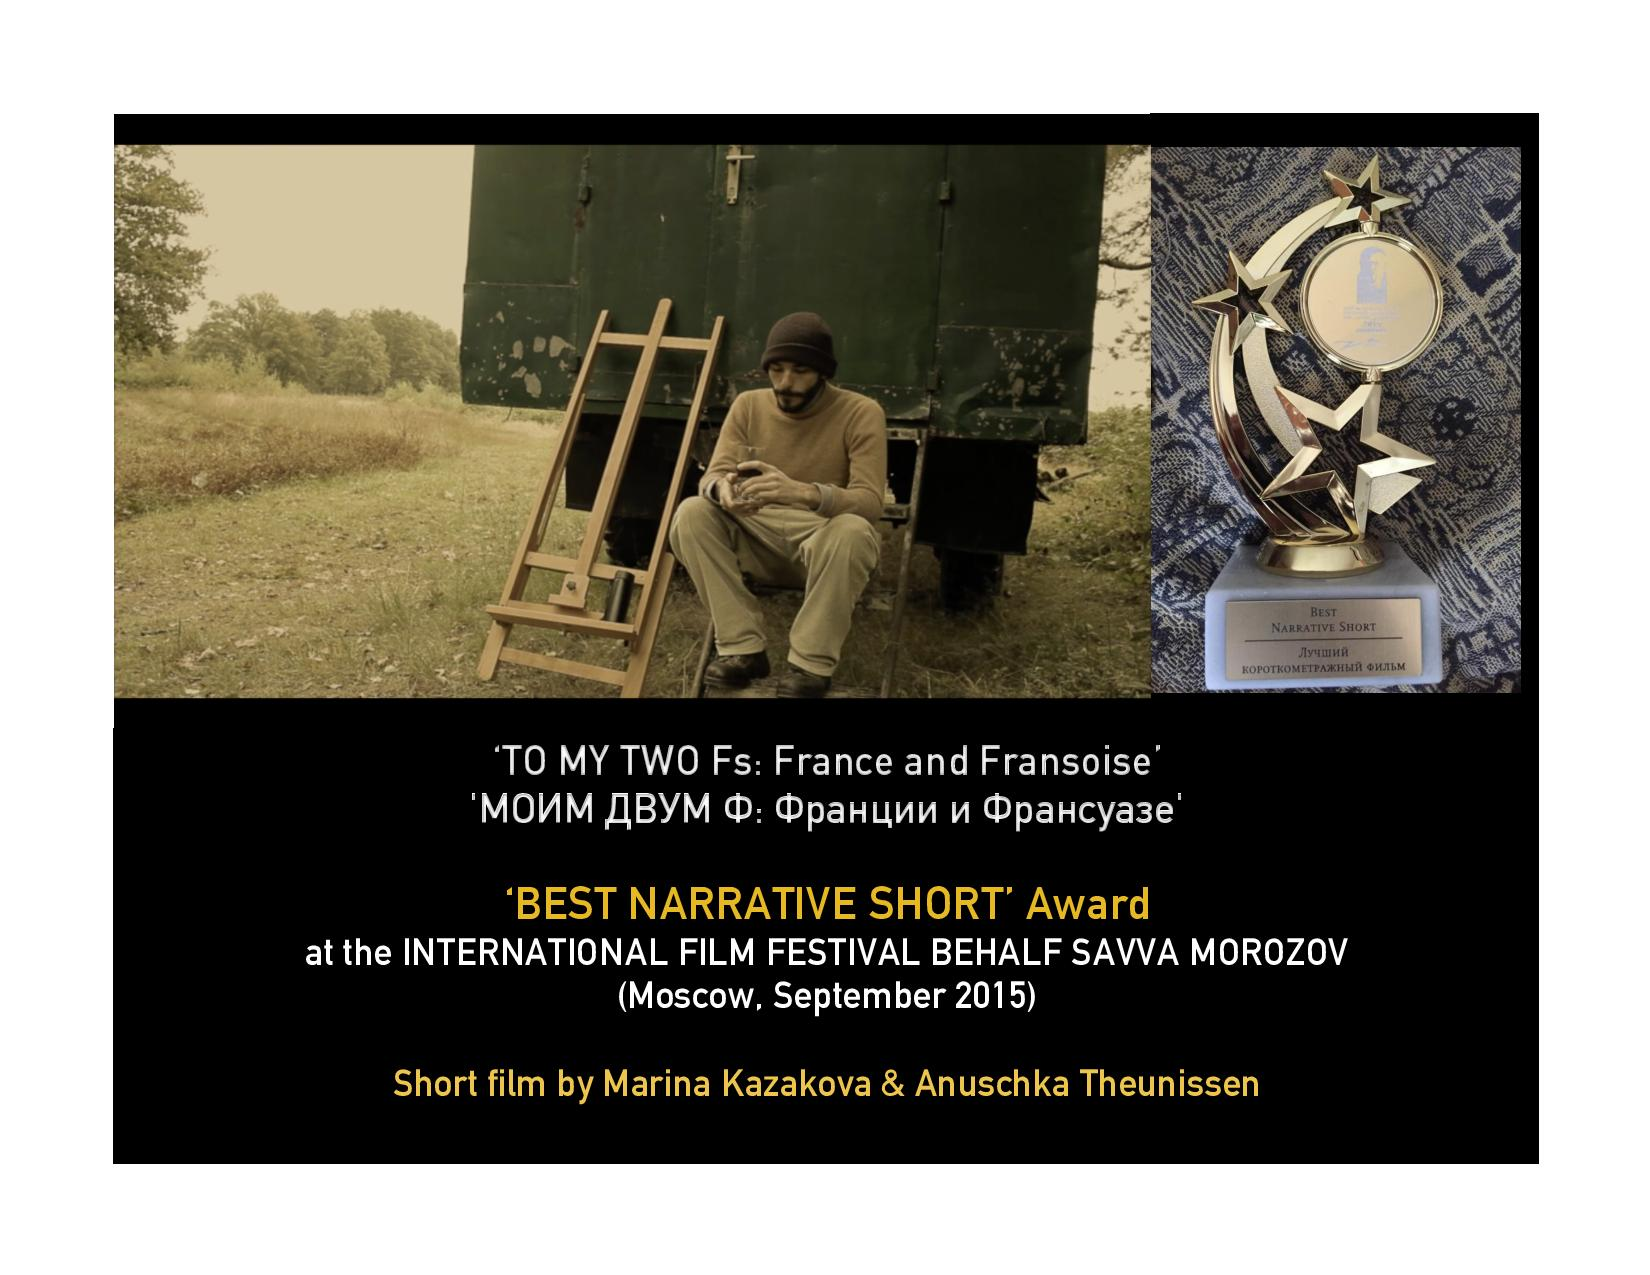 Our Film 'To My Two Fs: France and Francoise' is in the Cinema